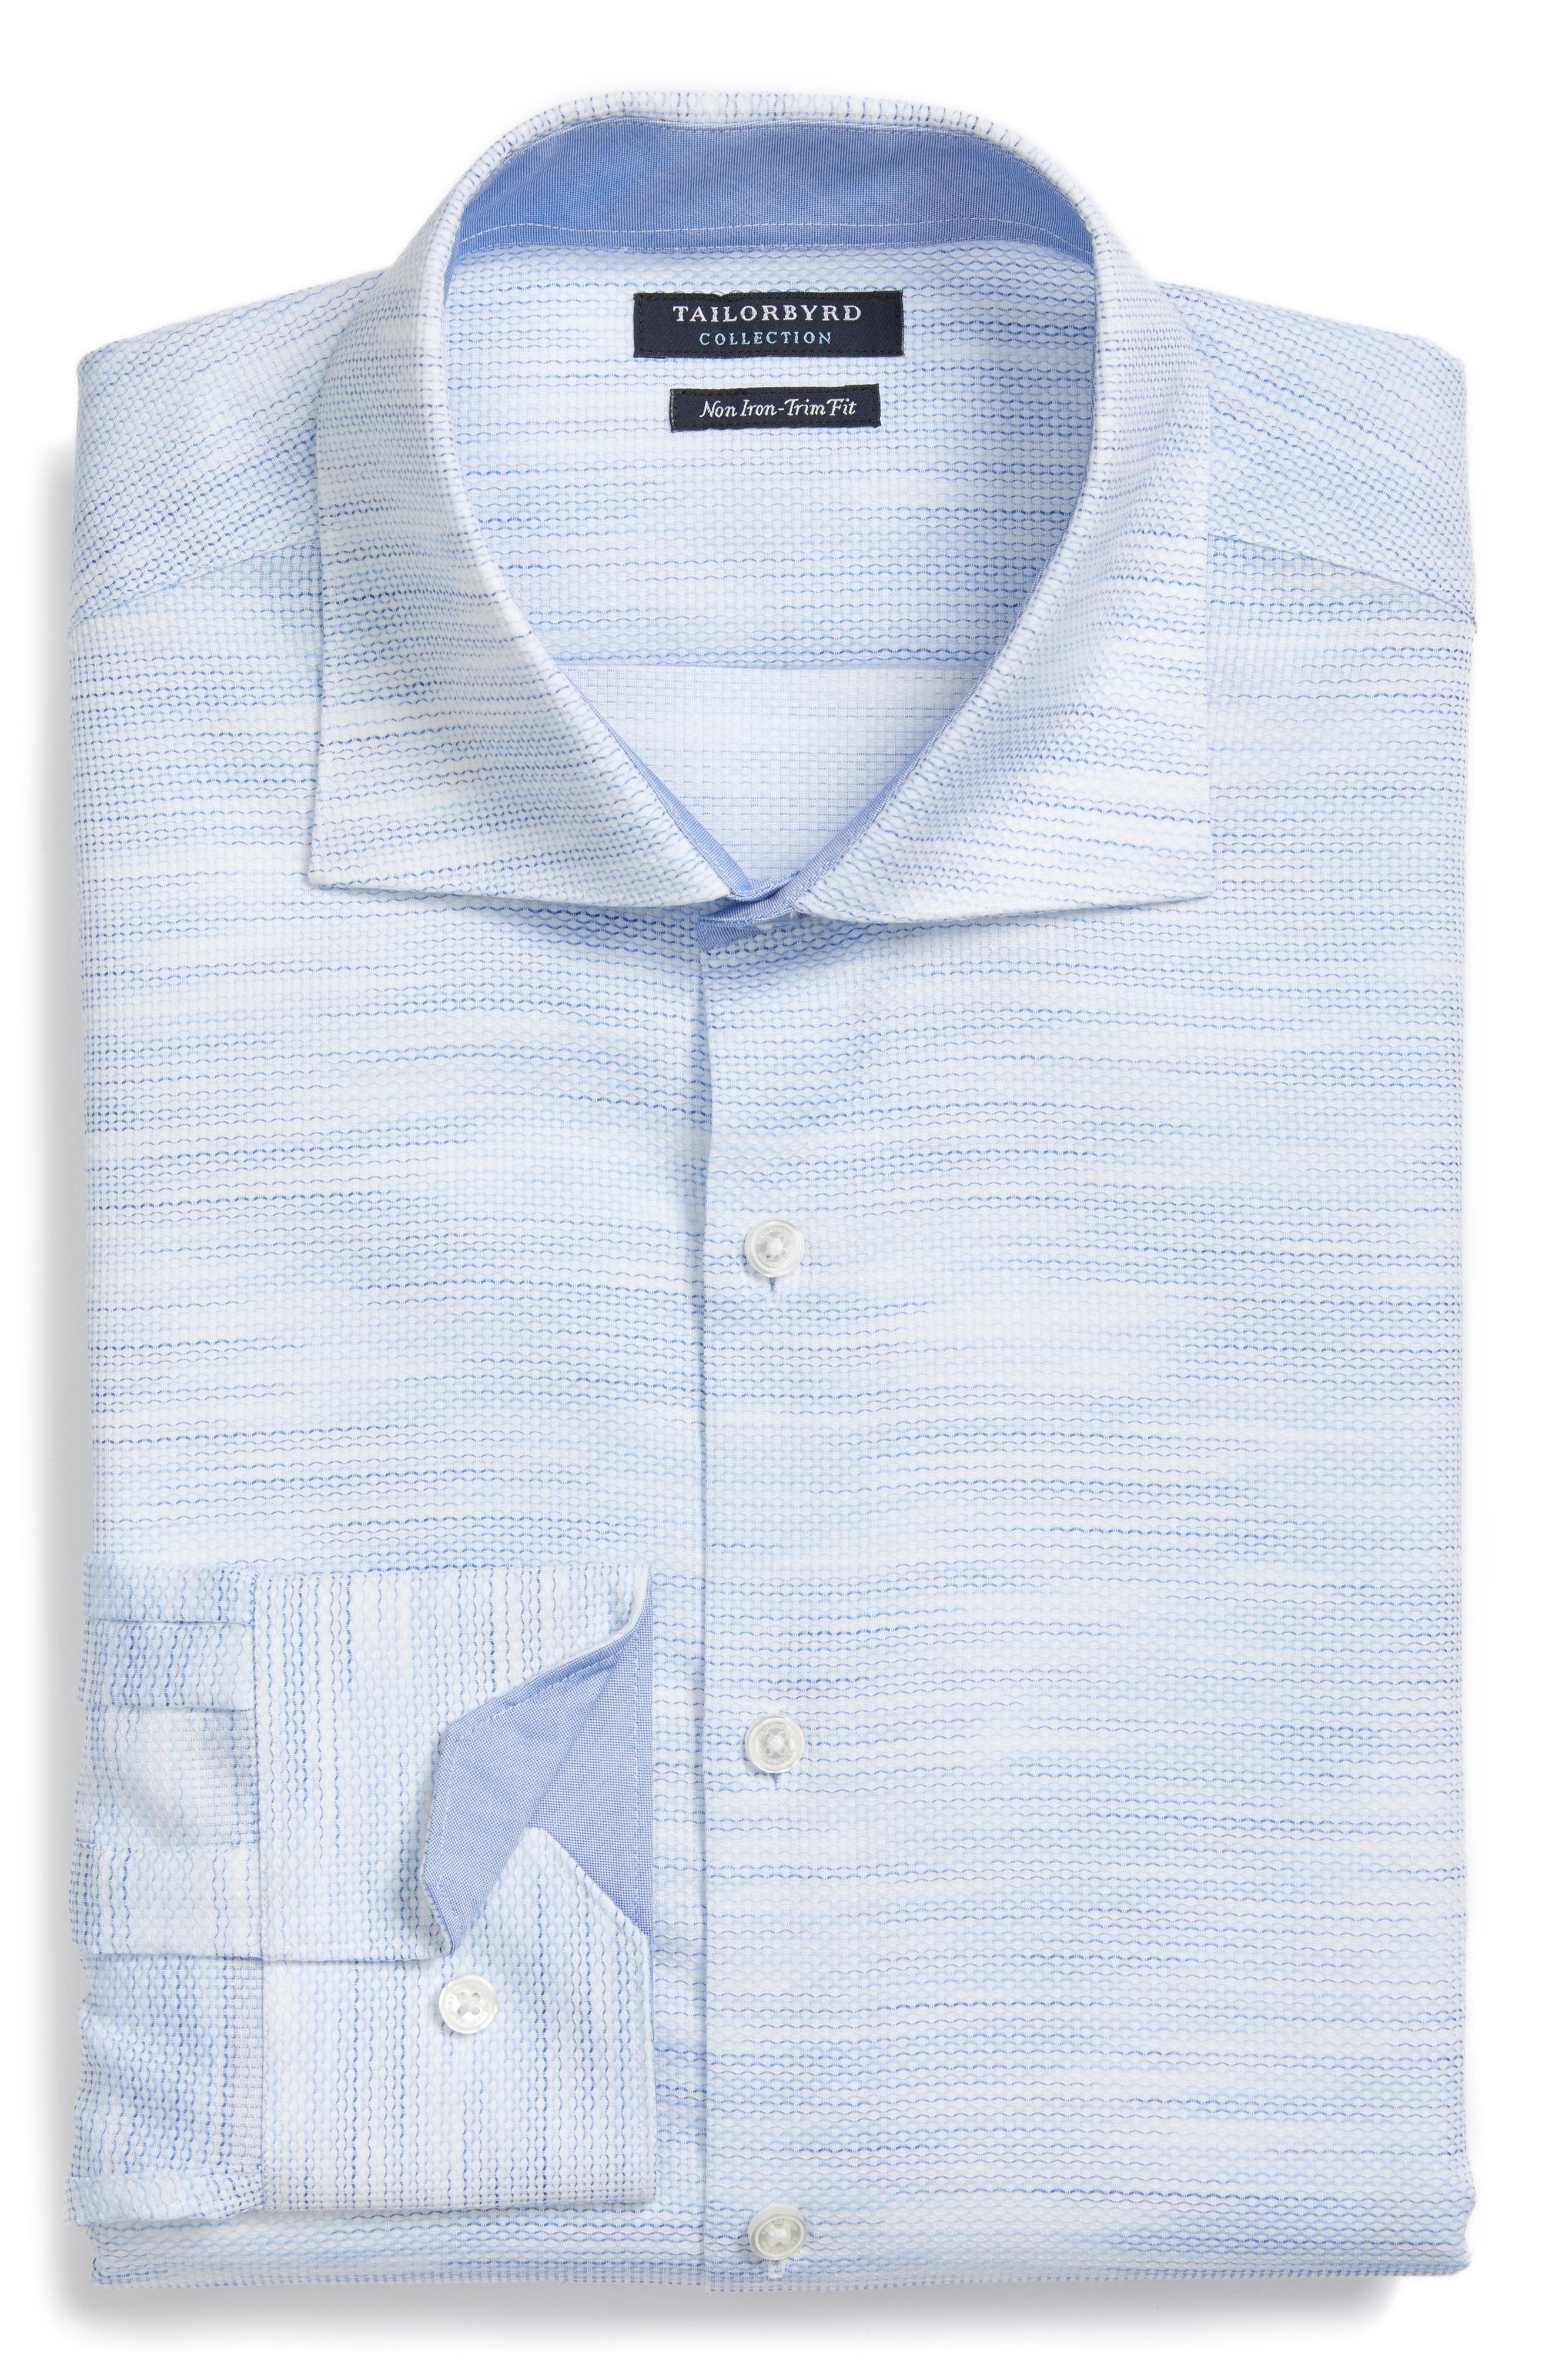 Tailorbyrd Trim Fit Solid Dress Shirt